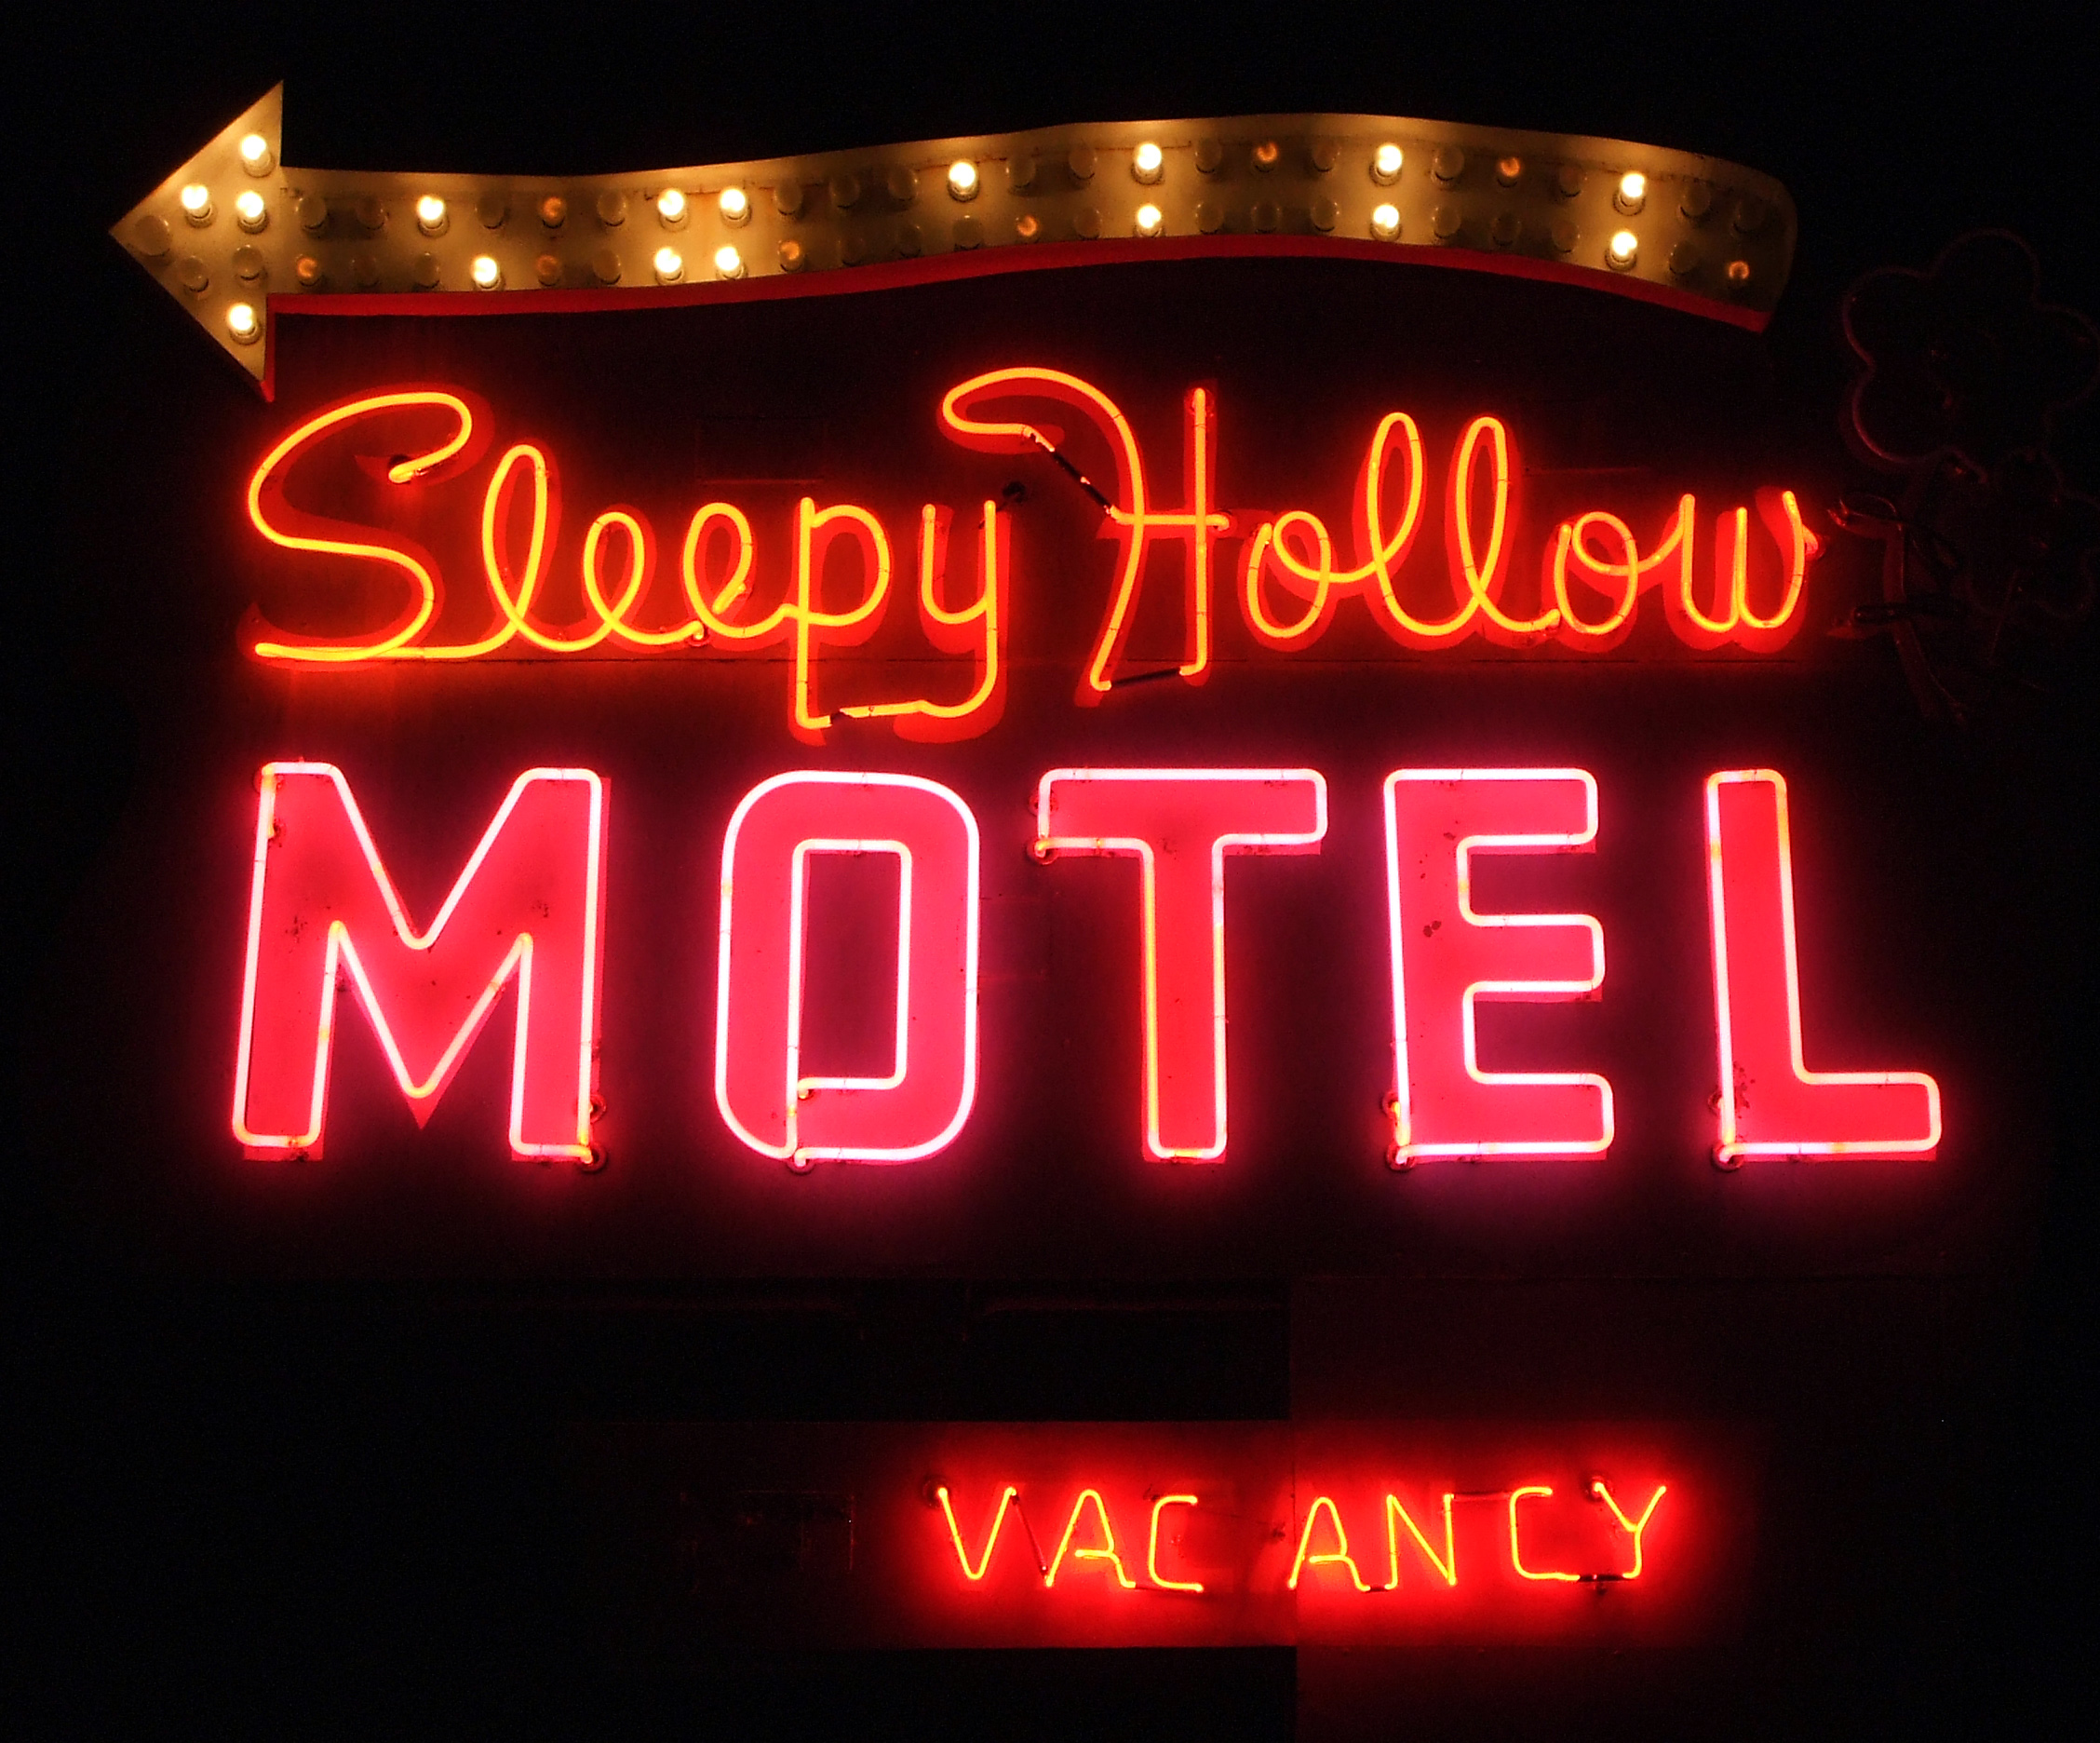 Sleepy Hollow Motel - 94 East Main Street, Green River, Utah U.S.A. - August 30, 2009